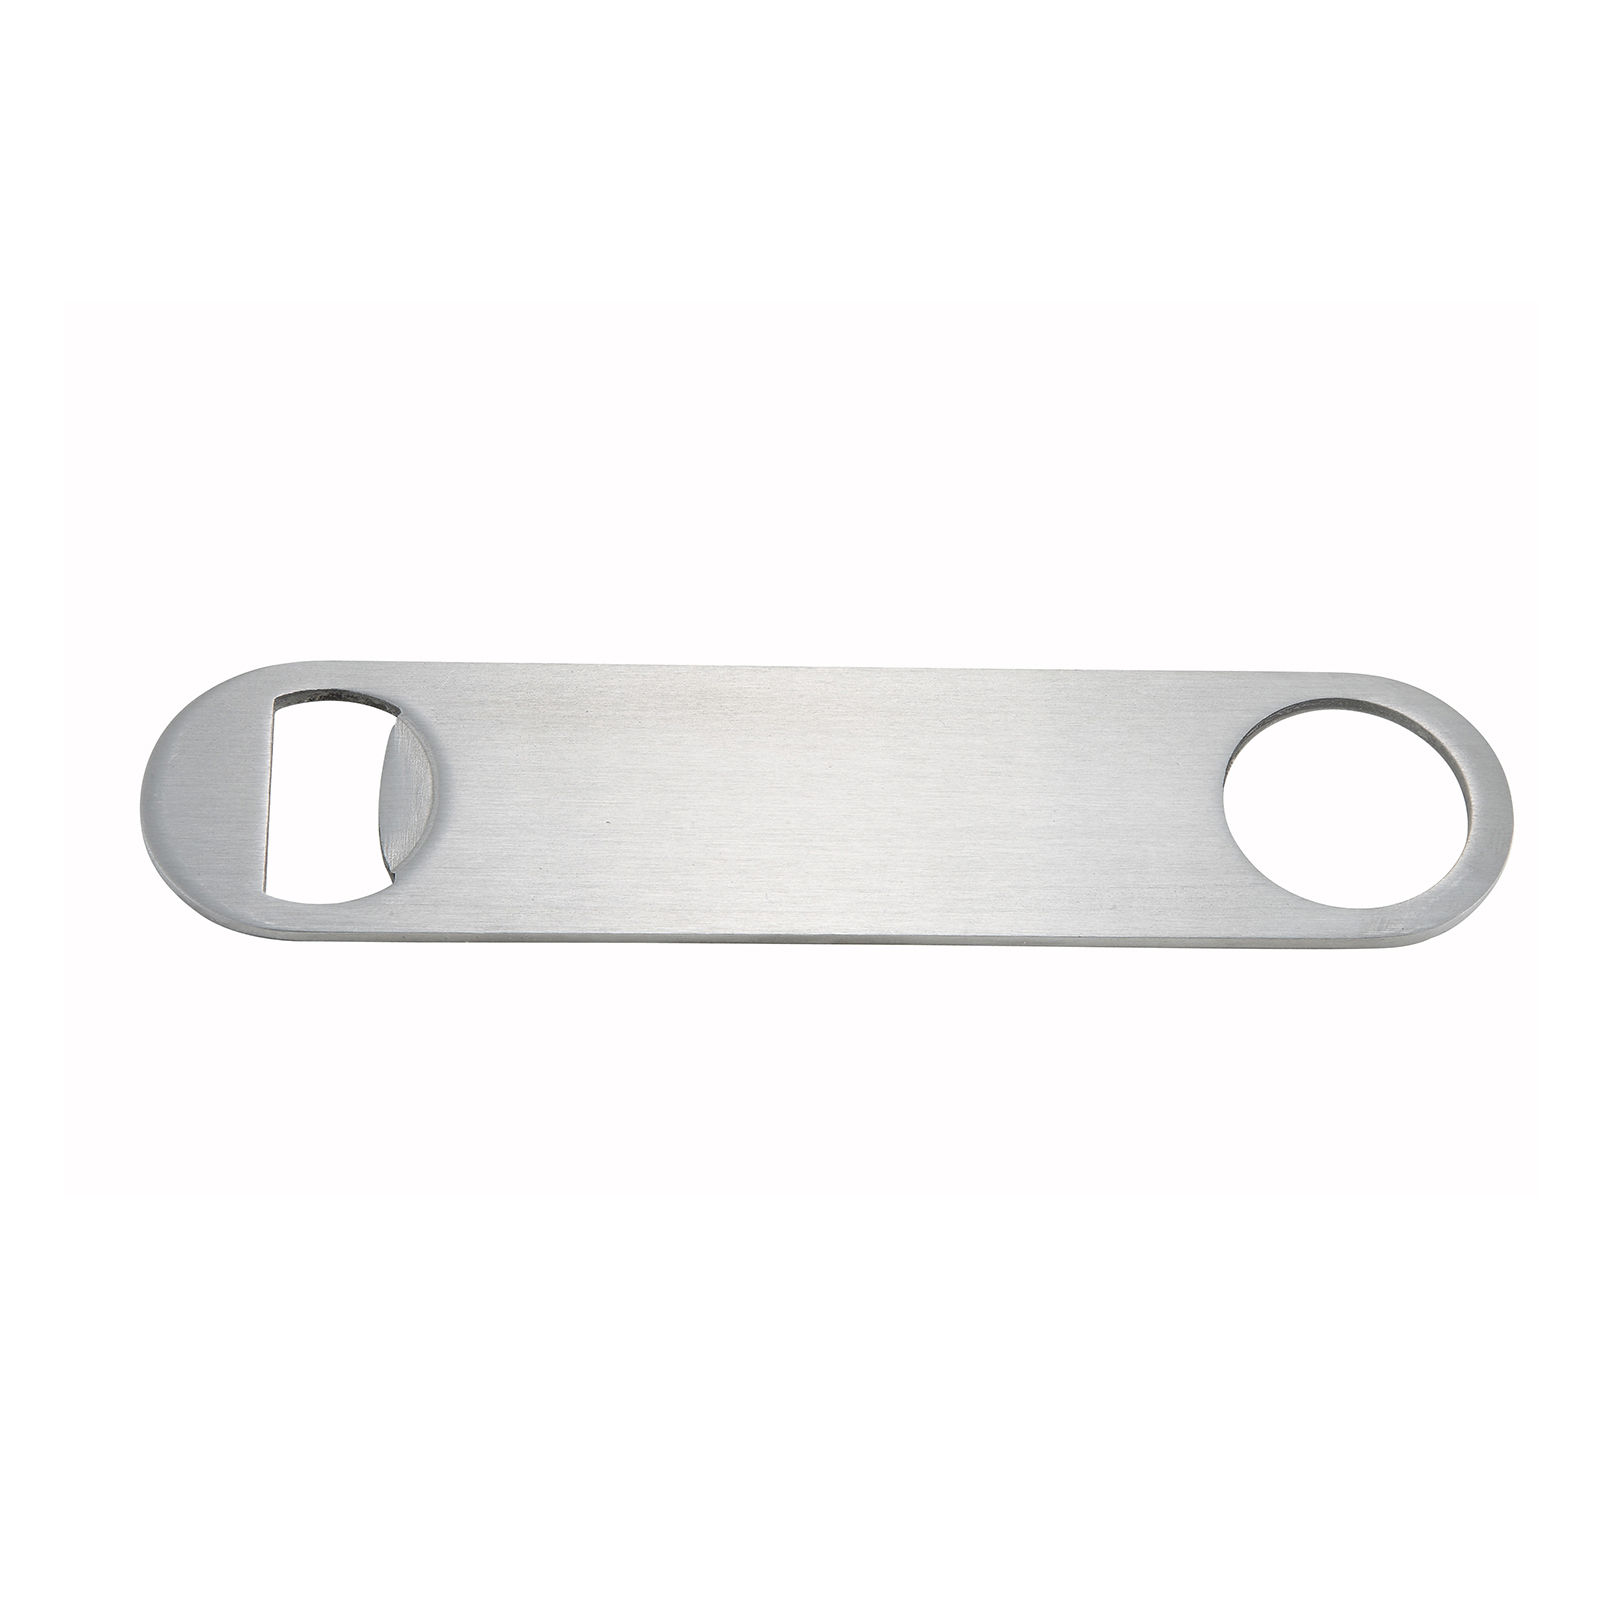 Winco CO-301 bottle cap opener, handheld